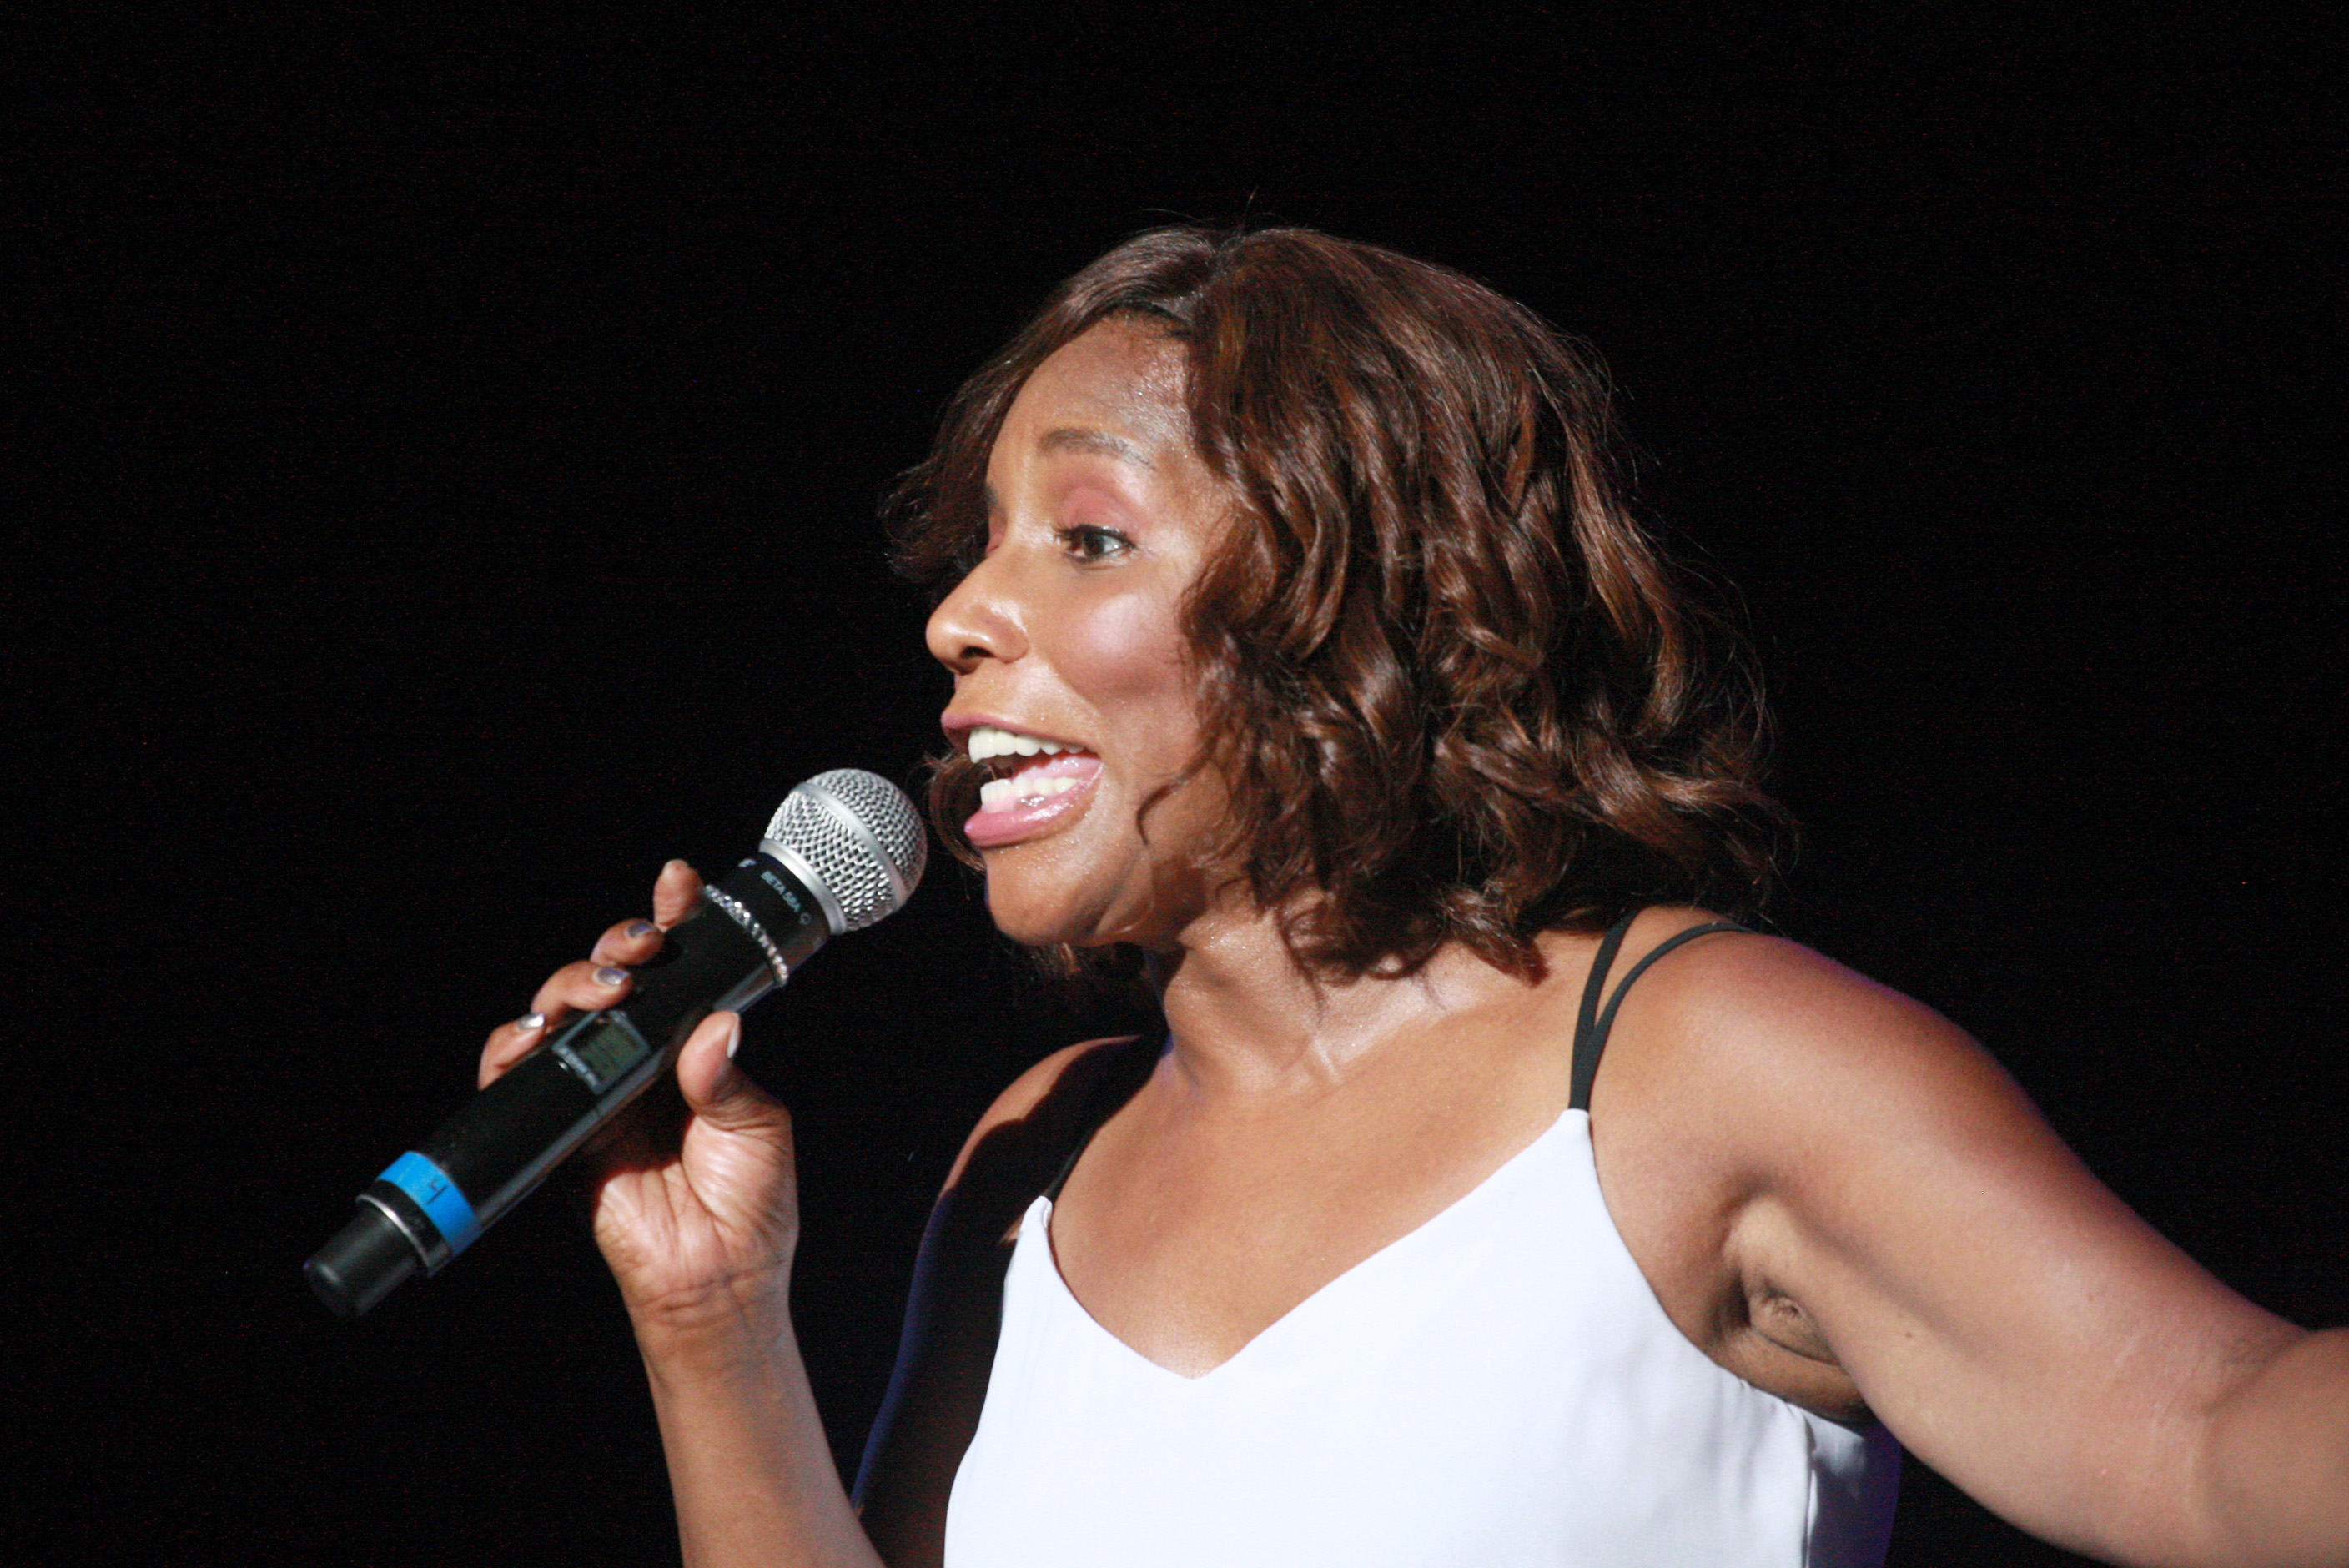 Stephanie Mills performs live in concert